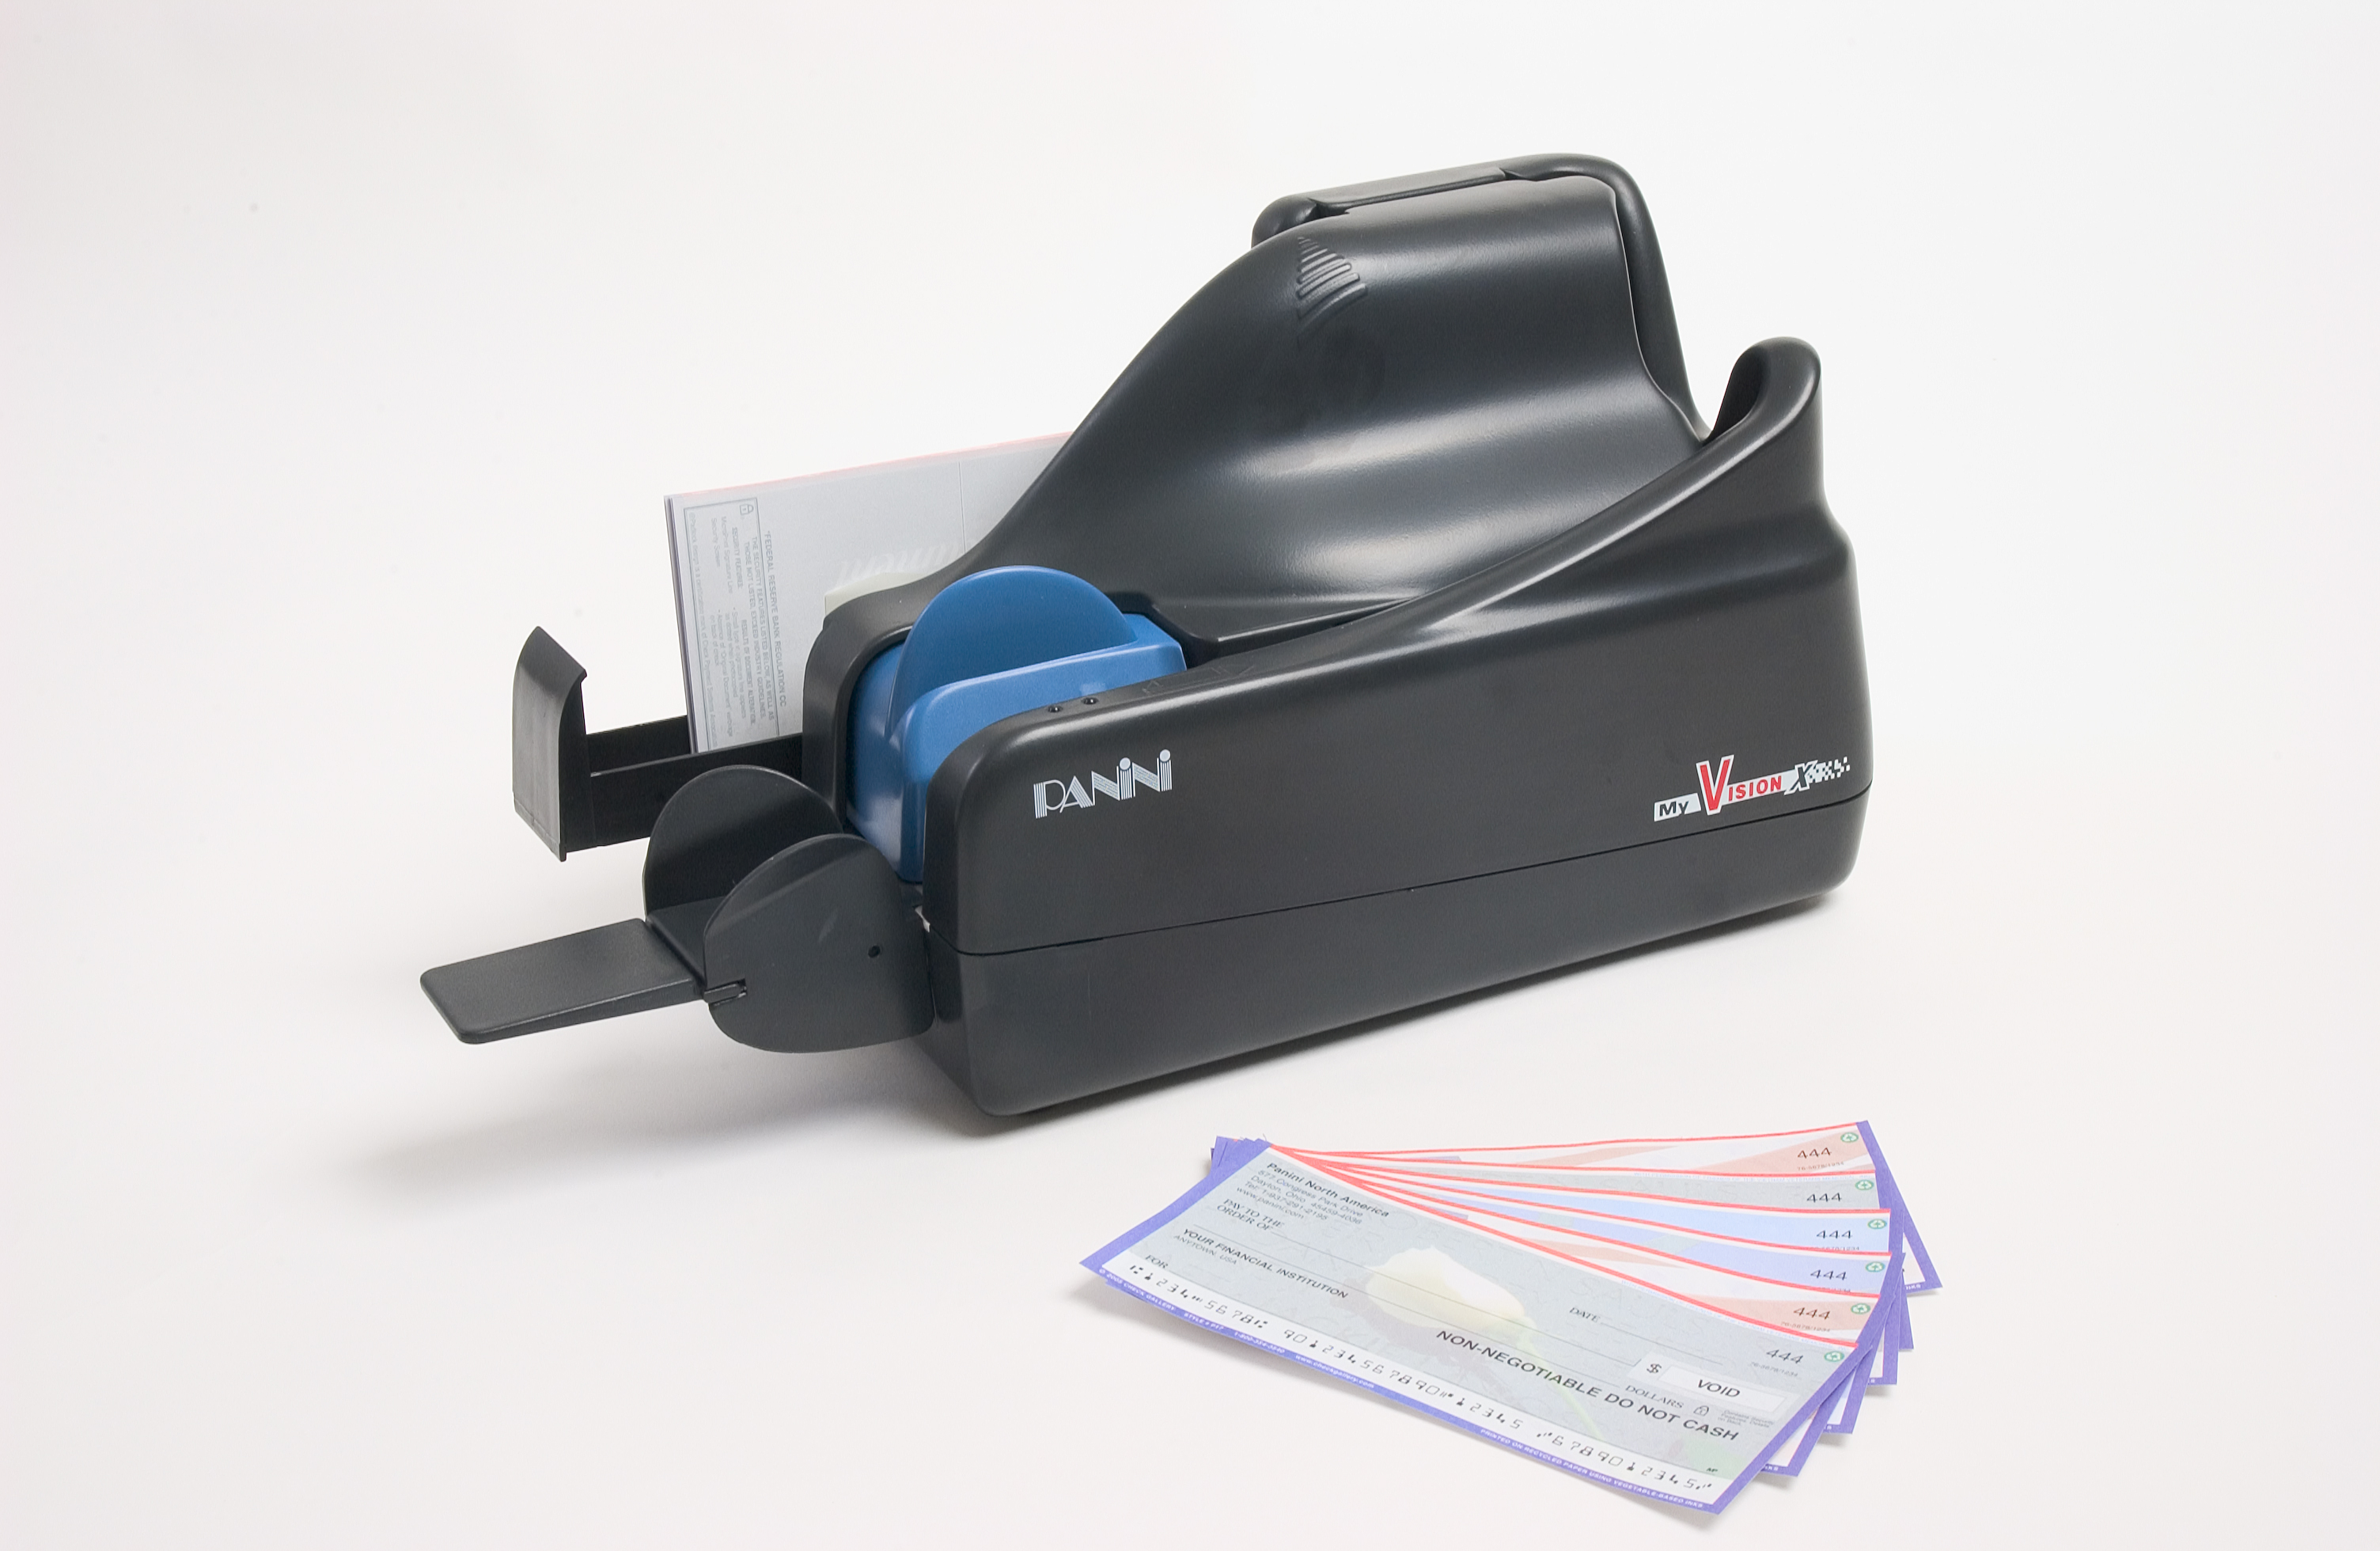 REFURBISHED Panini My Vision X 90dpm, 100 Doc Feeder